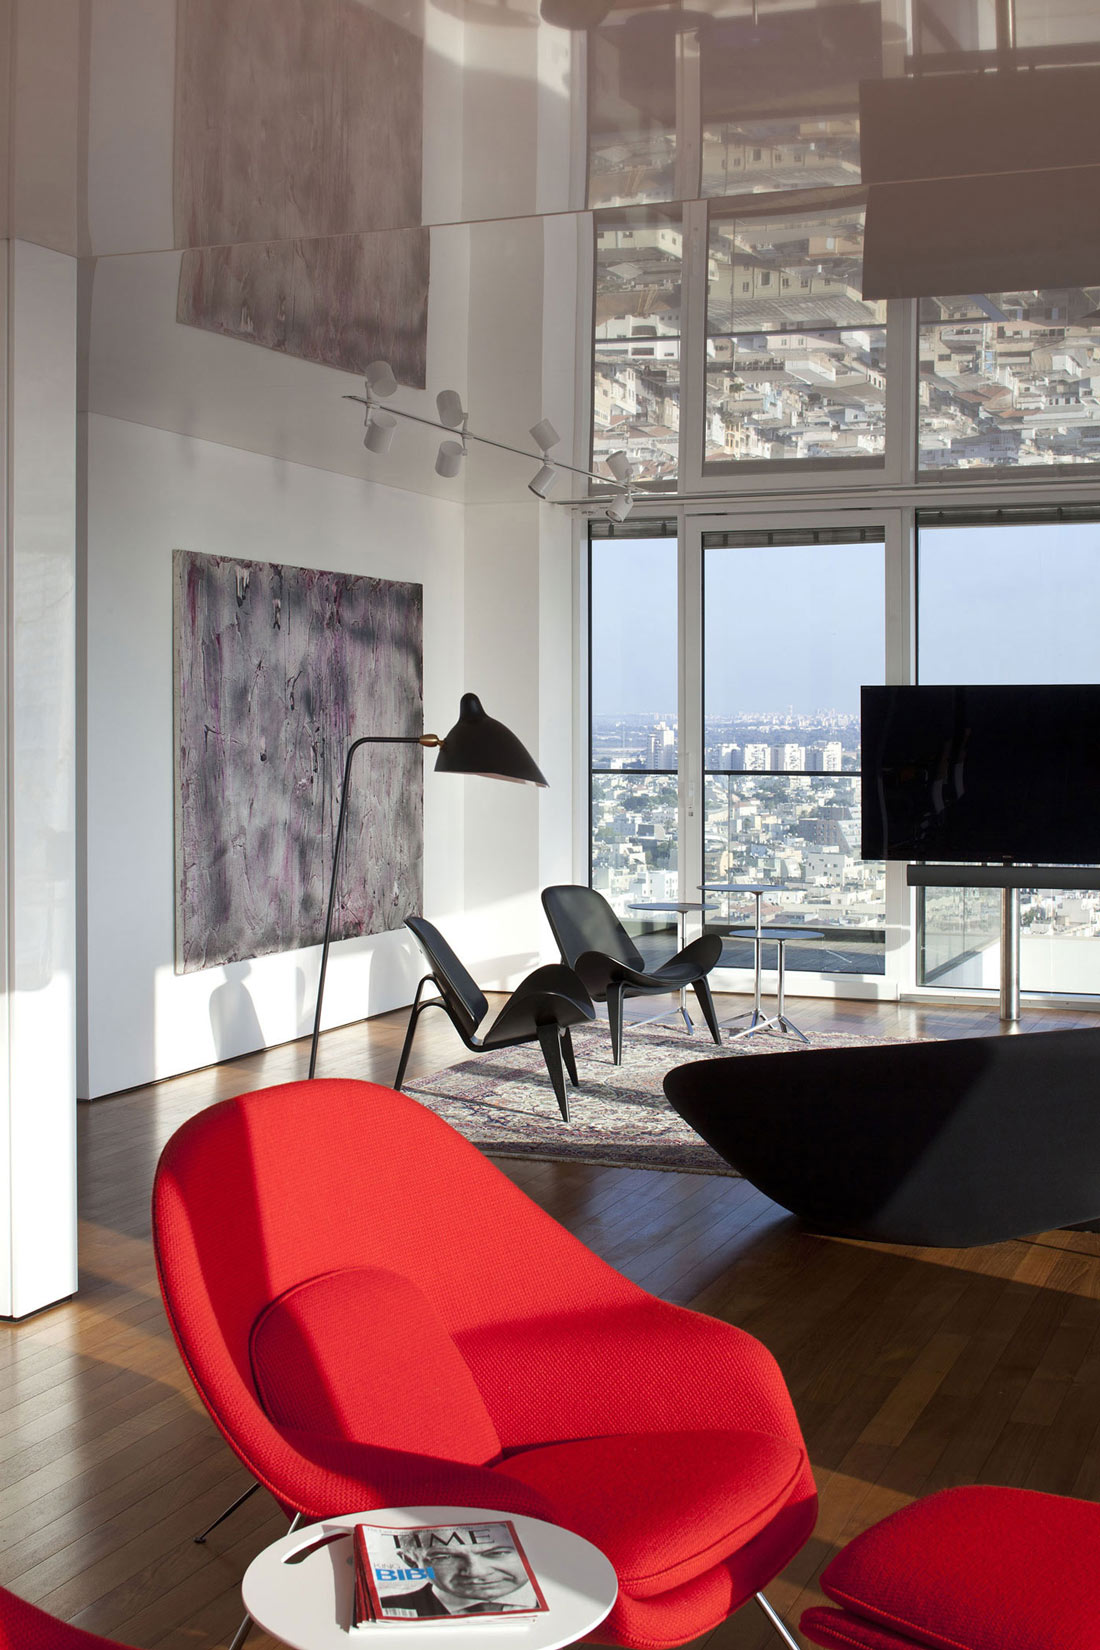 Art, Red Chair, Elegant Apartment with Reflective Ceiling in Tel Aviv, Israel